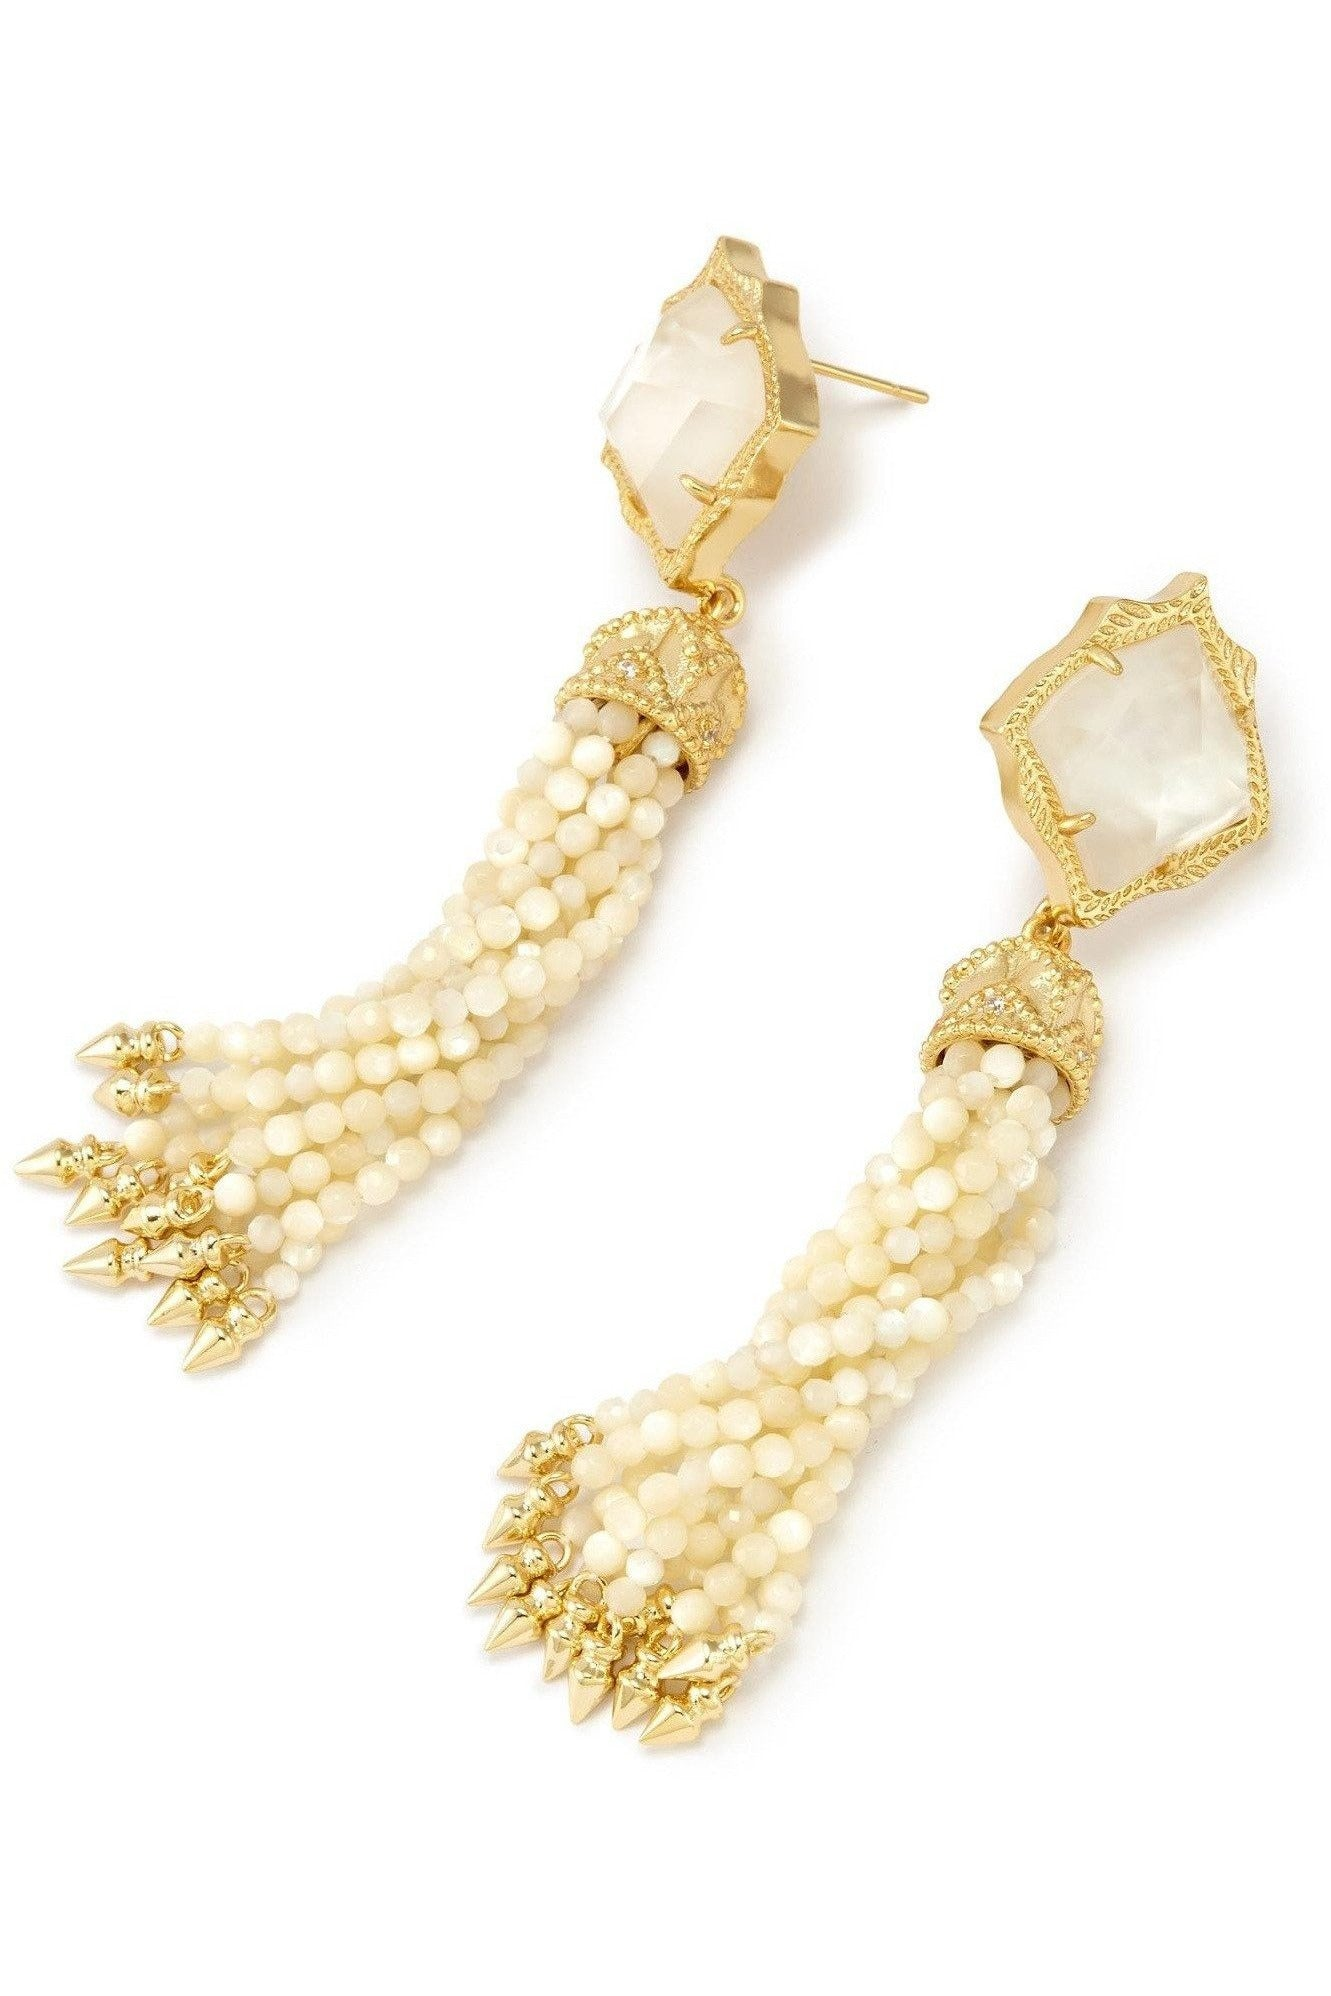 Kendra Scott: Misha Statement Earrings In Ivory Pearl